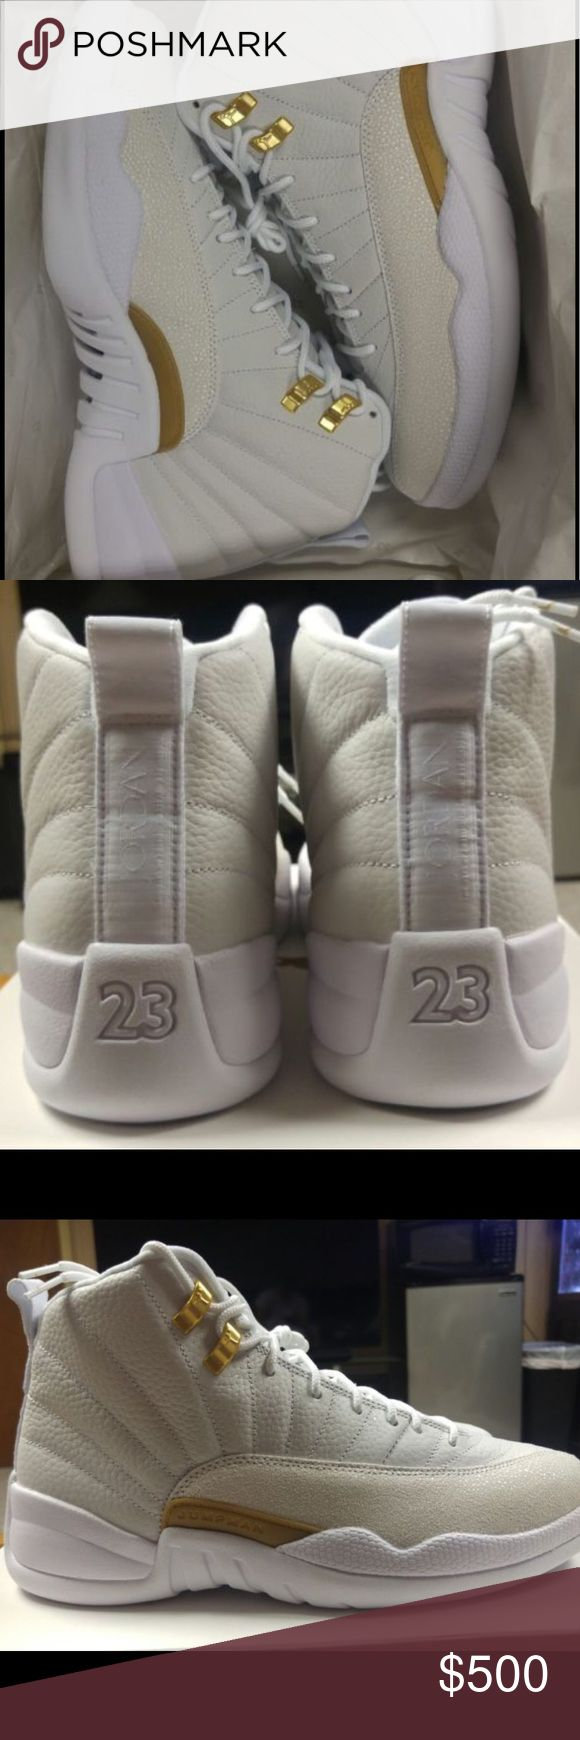 Jordan OvO 12s 100%Authentic, All Original Pictures, COMES WITH RECEIPT can contact me at (248) 694-7379 , TEXT OR CALL ME  REGARDING THE PRICE AND PAYMENT Follow me on instagram (@LakeSidekicksMI ) Jordan Shoes Sneakers